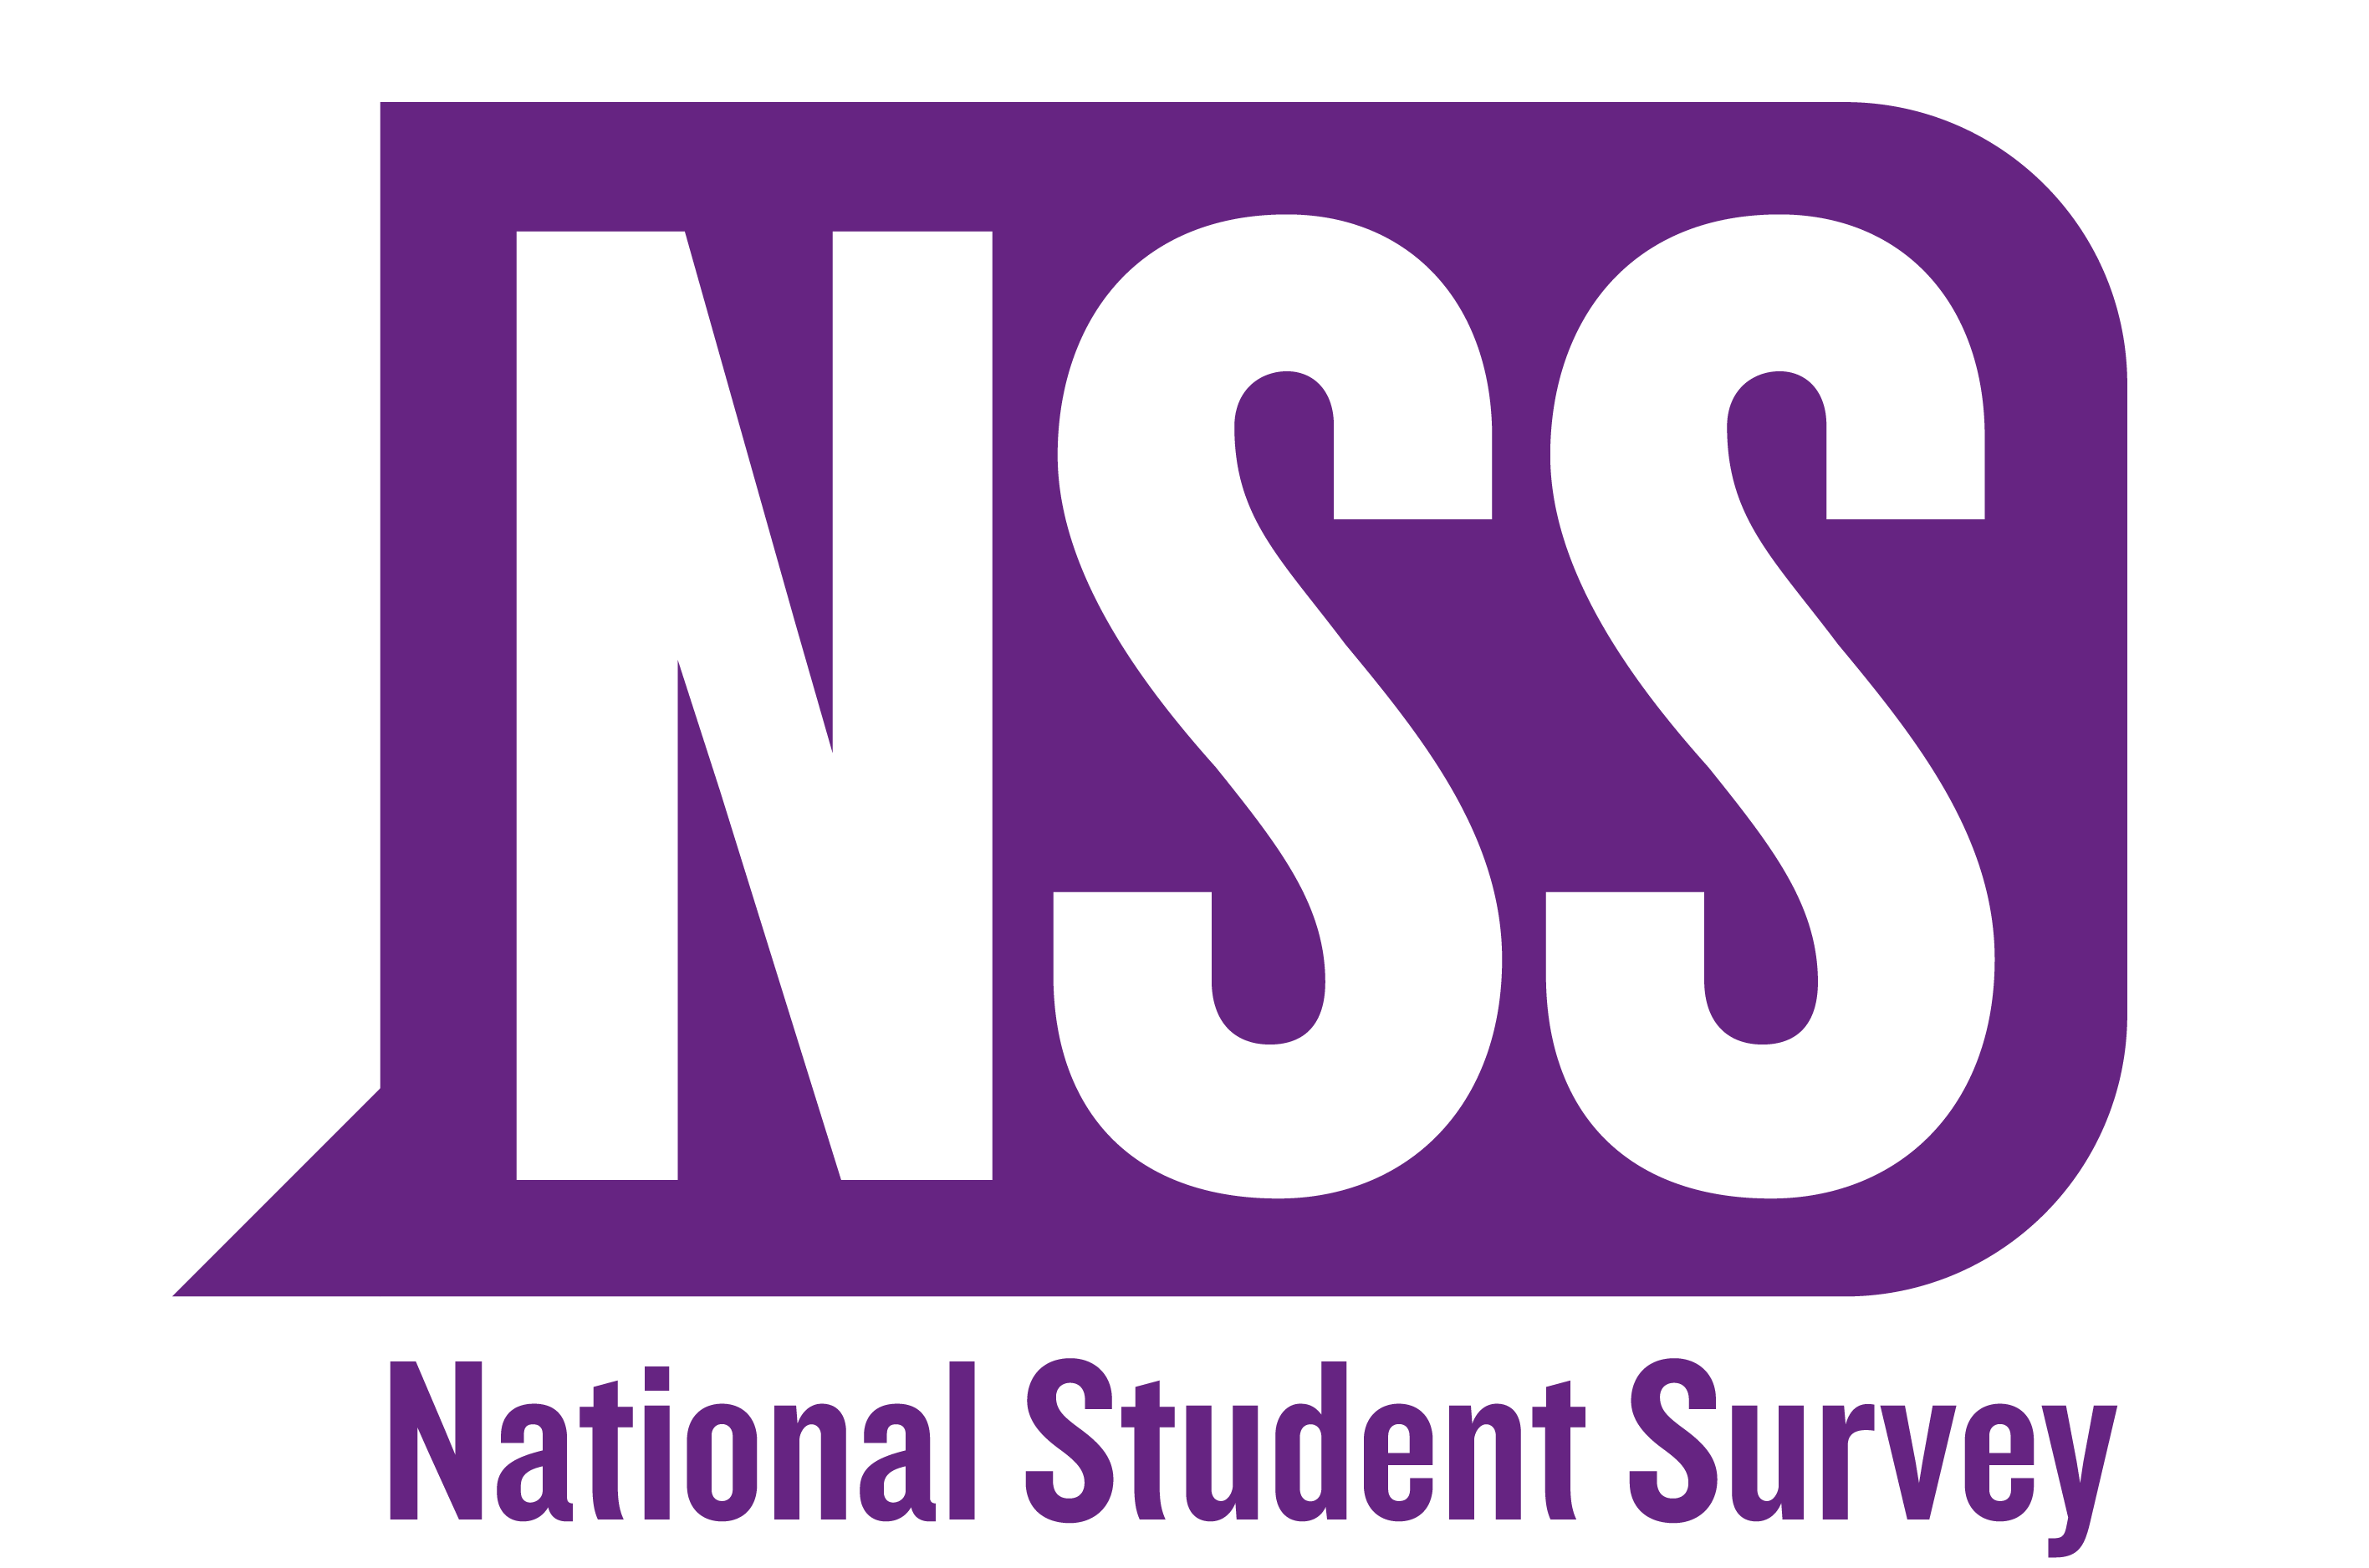 NATIONAL STUDENT SURVEY 2017 LOGO